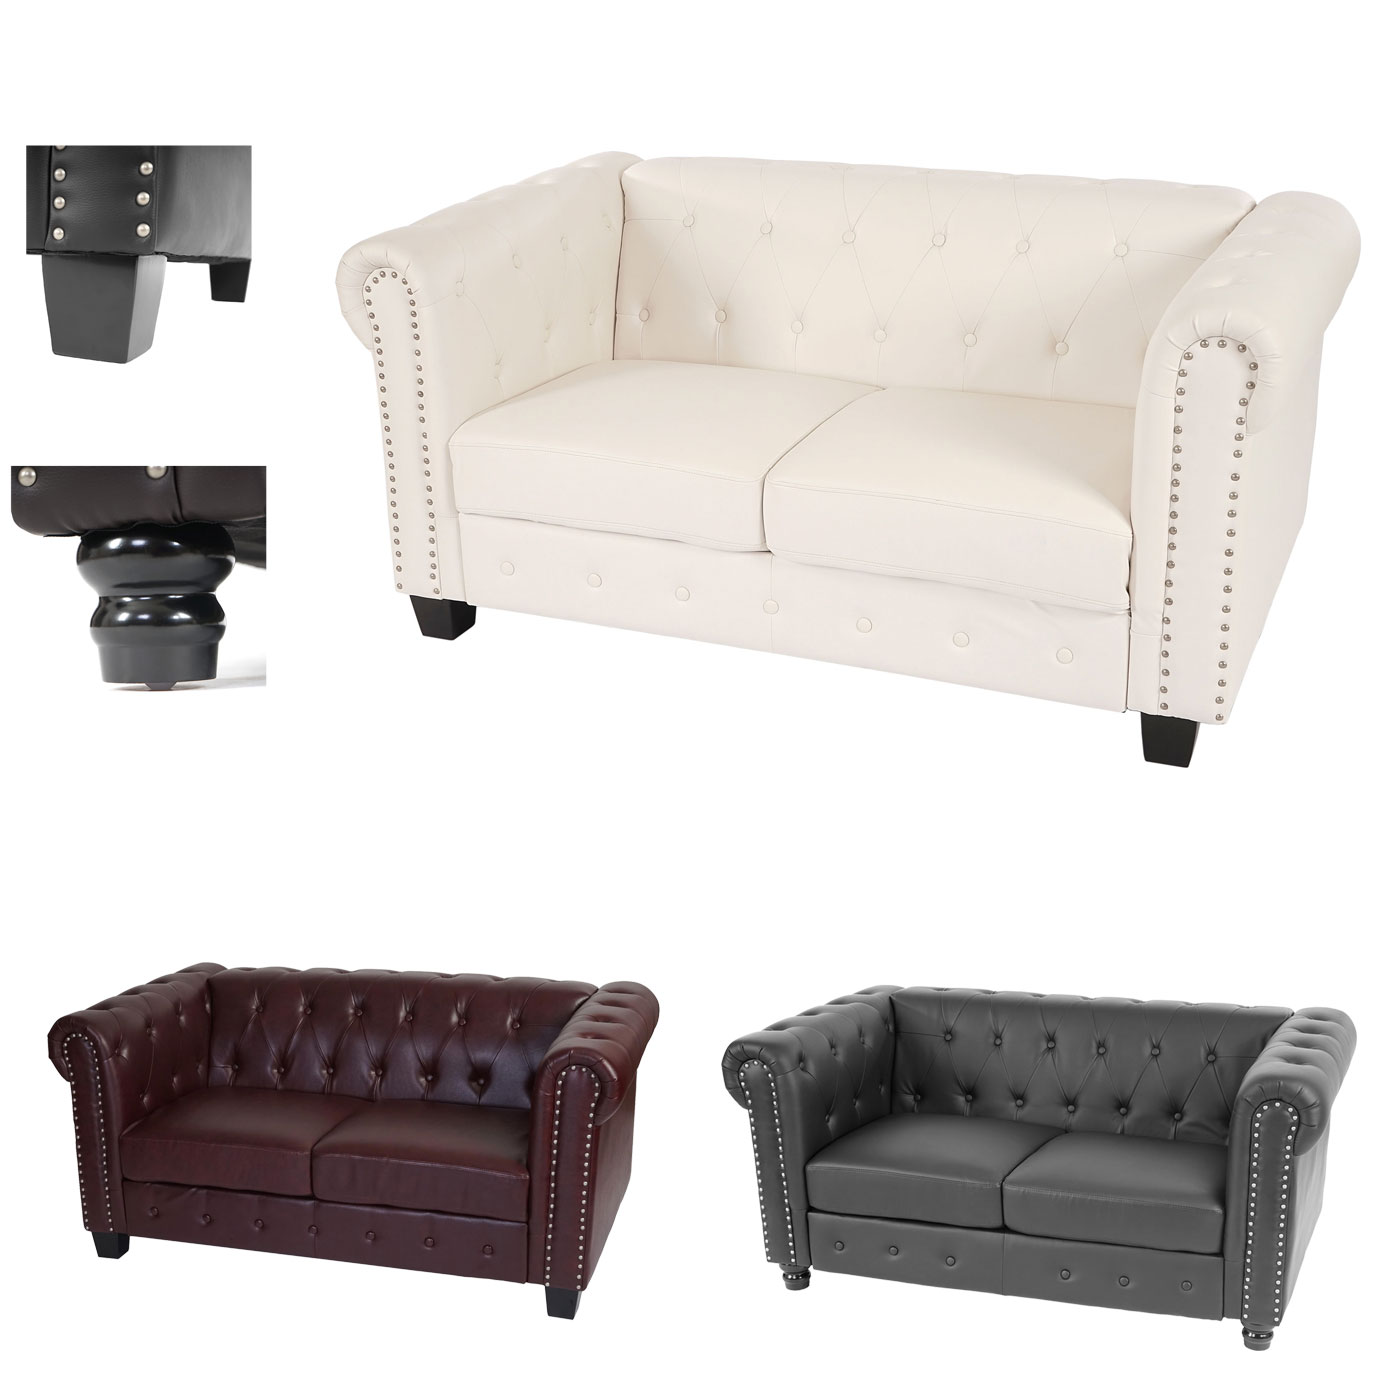 2er Sofa Chesterfield Stil Chesterfield Lounge 2er Sofa Couch Runde Füsse Jamb Ch